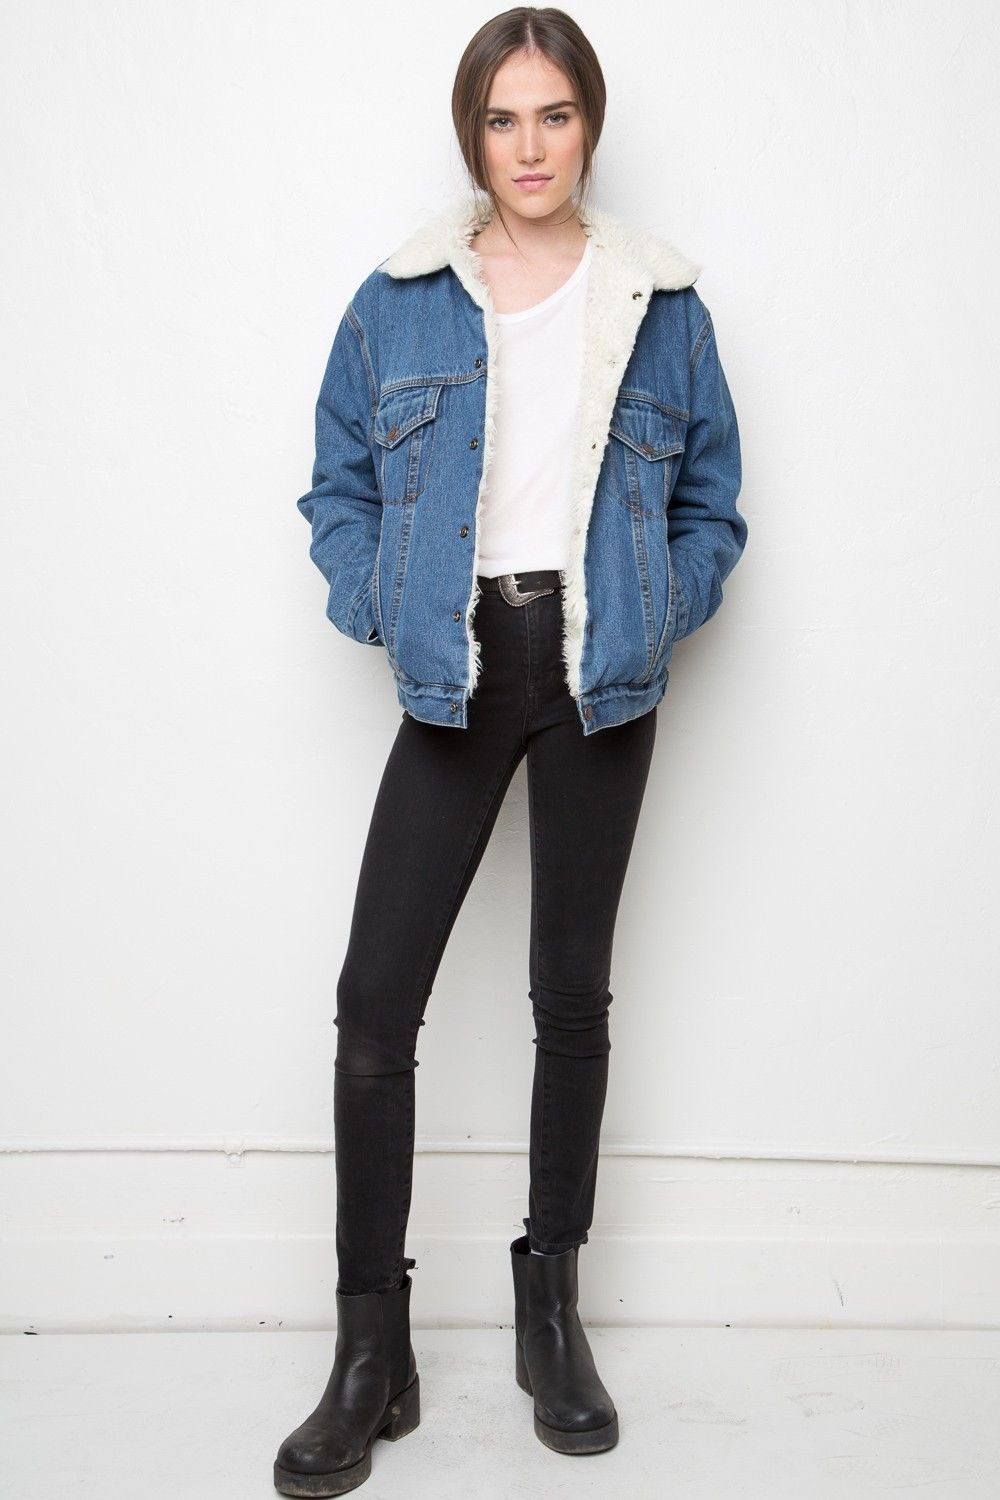 Brandy Melville Anri Fur Denim Jacket Outerwear Clothing